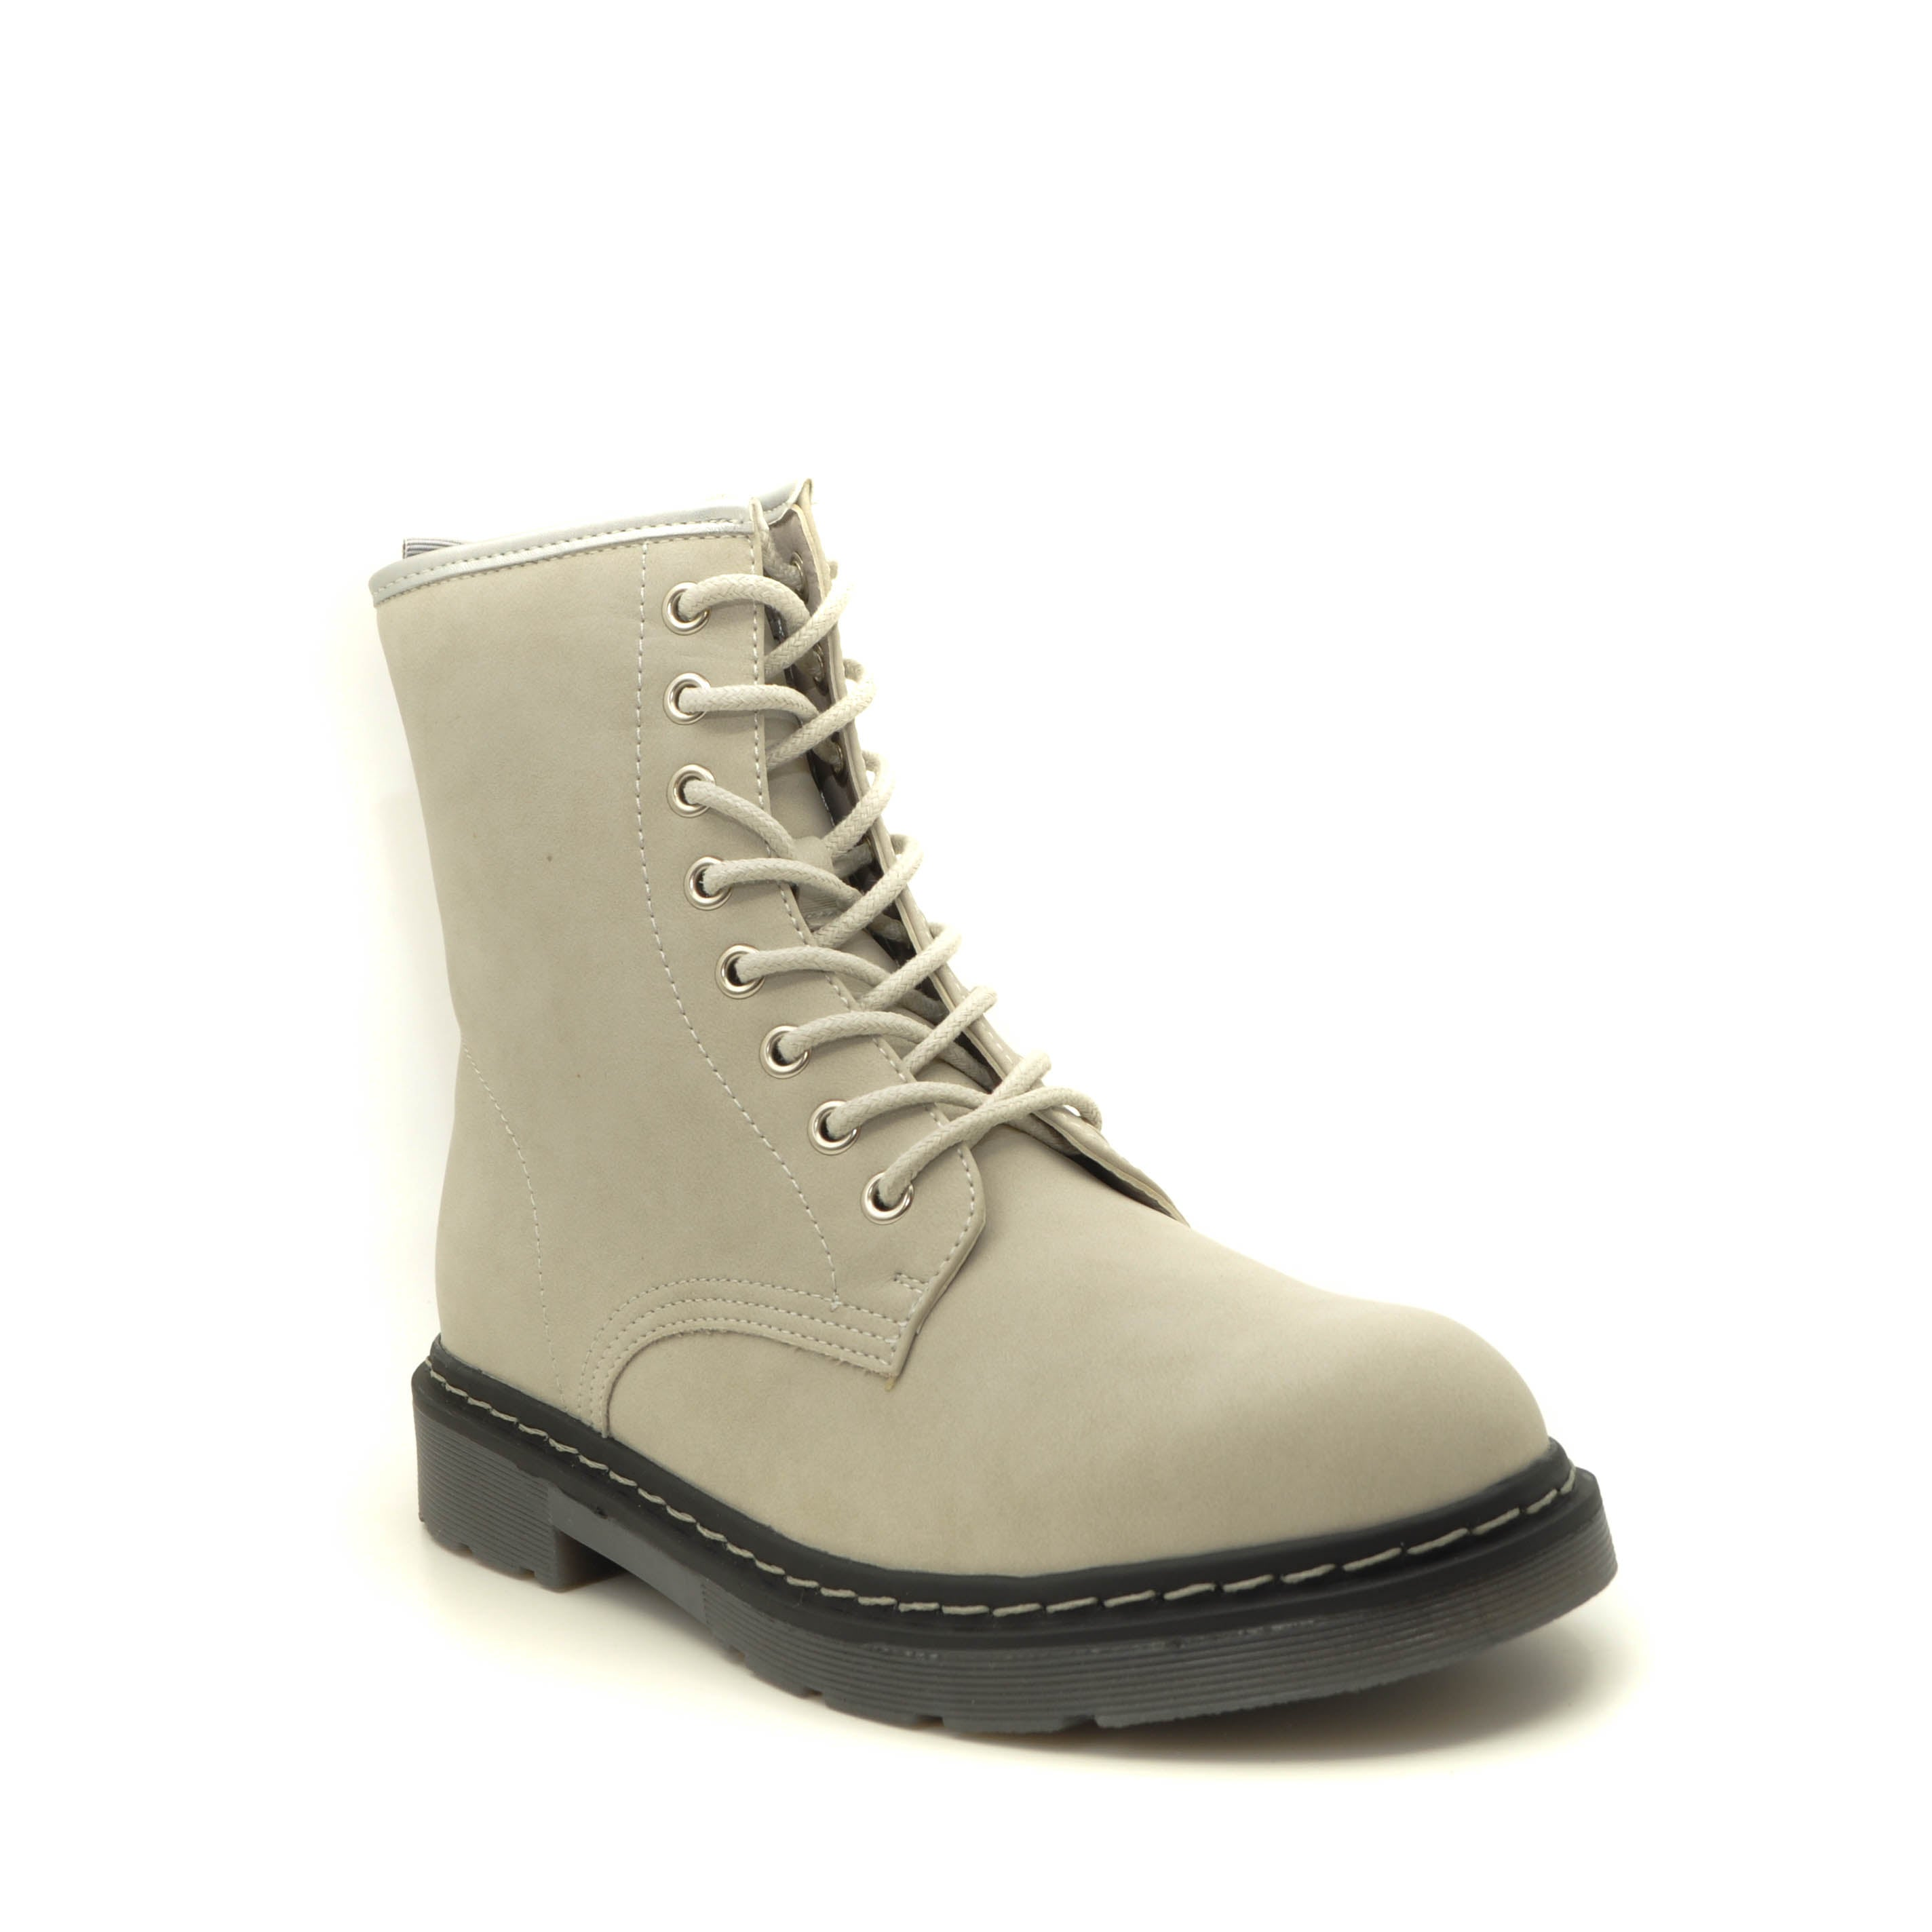 grey ankle boots Drilleys